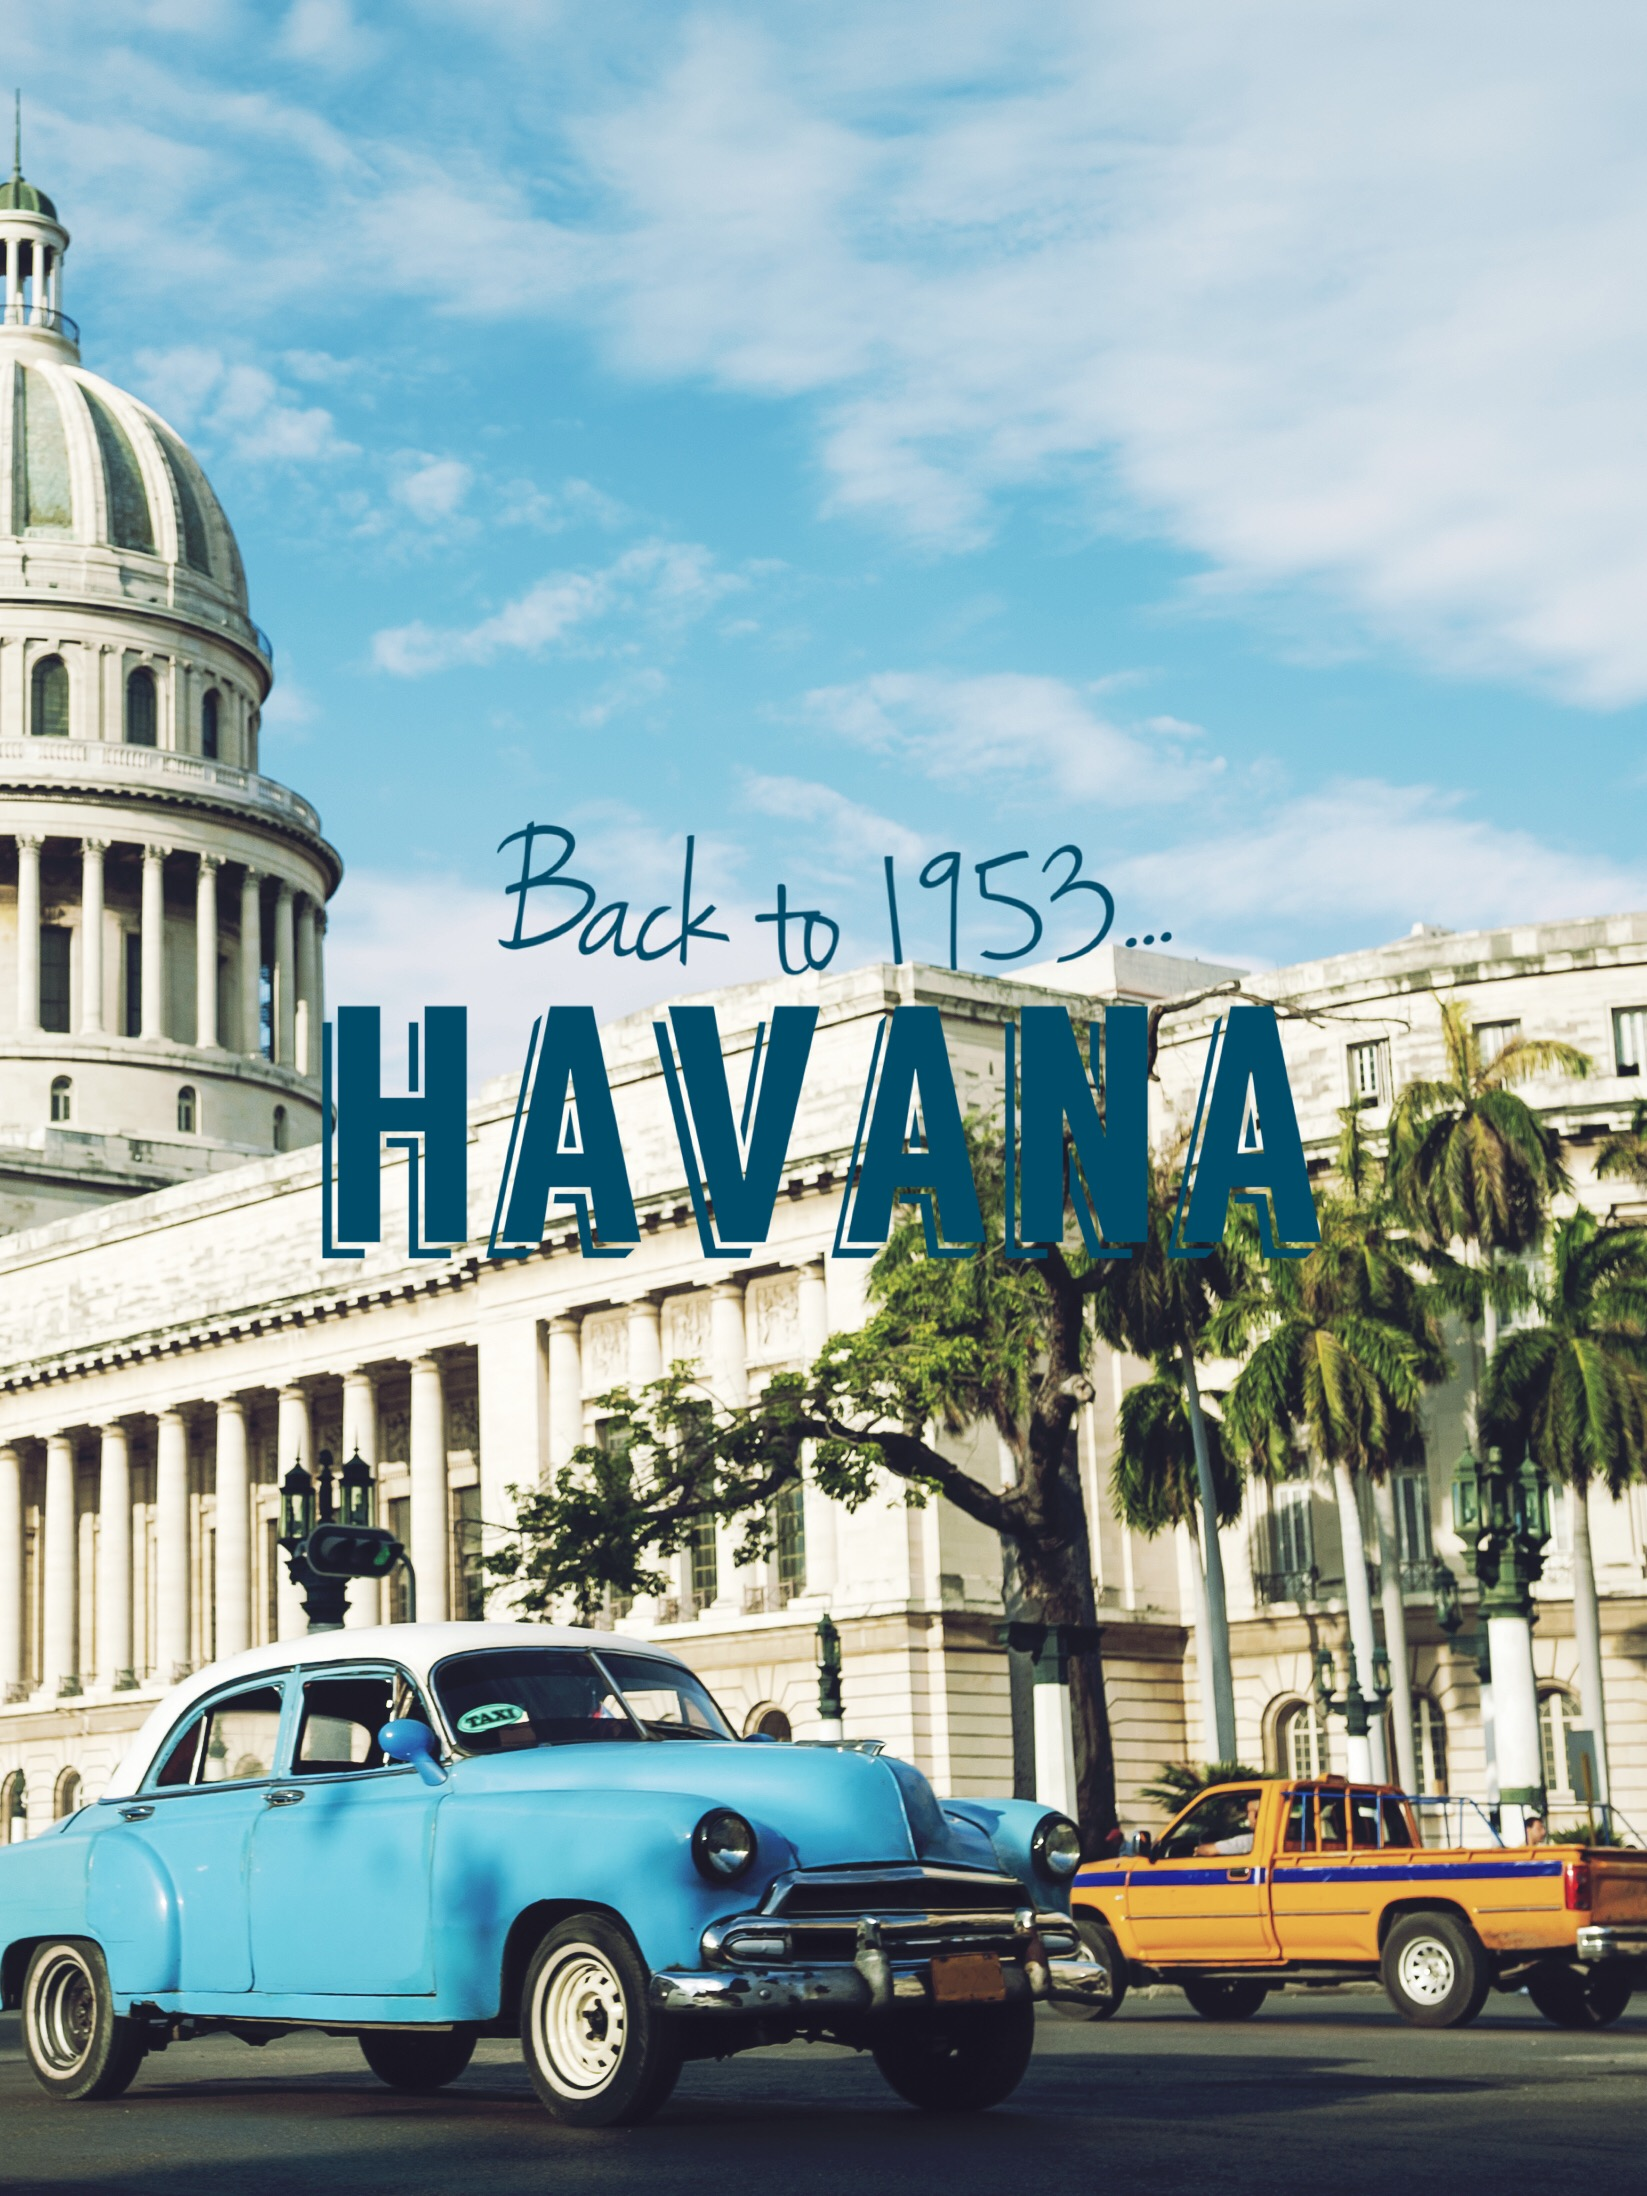 Back to 1953 – Havana's First Impression